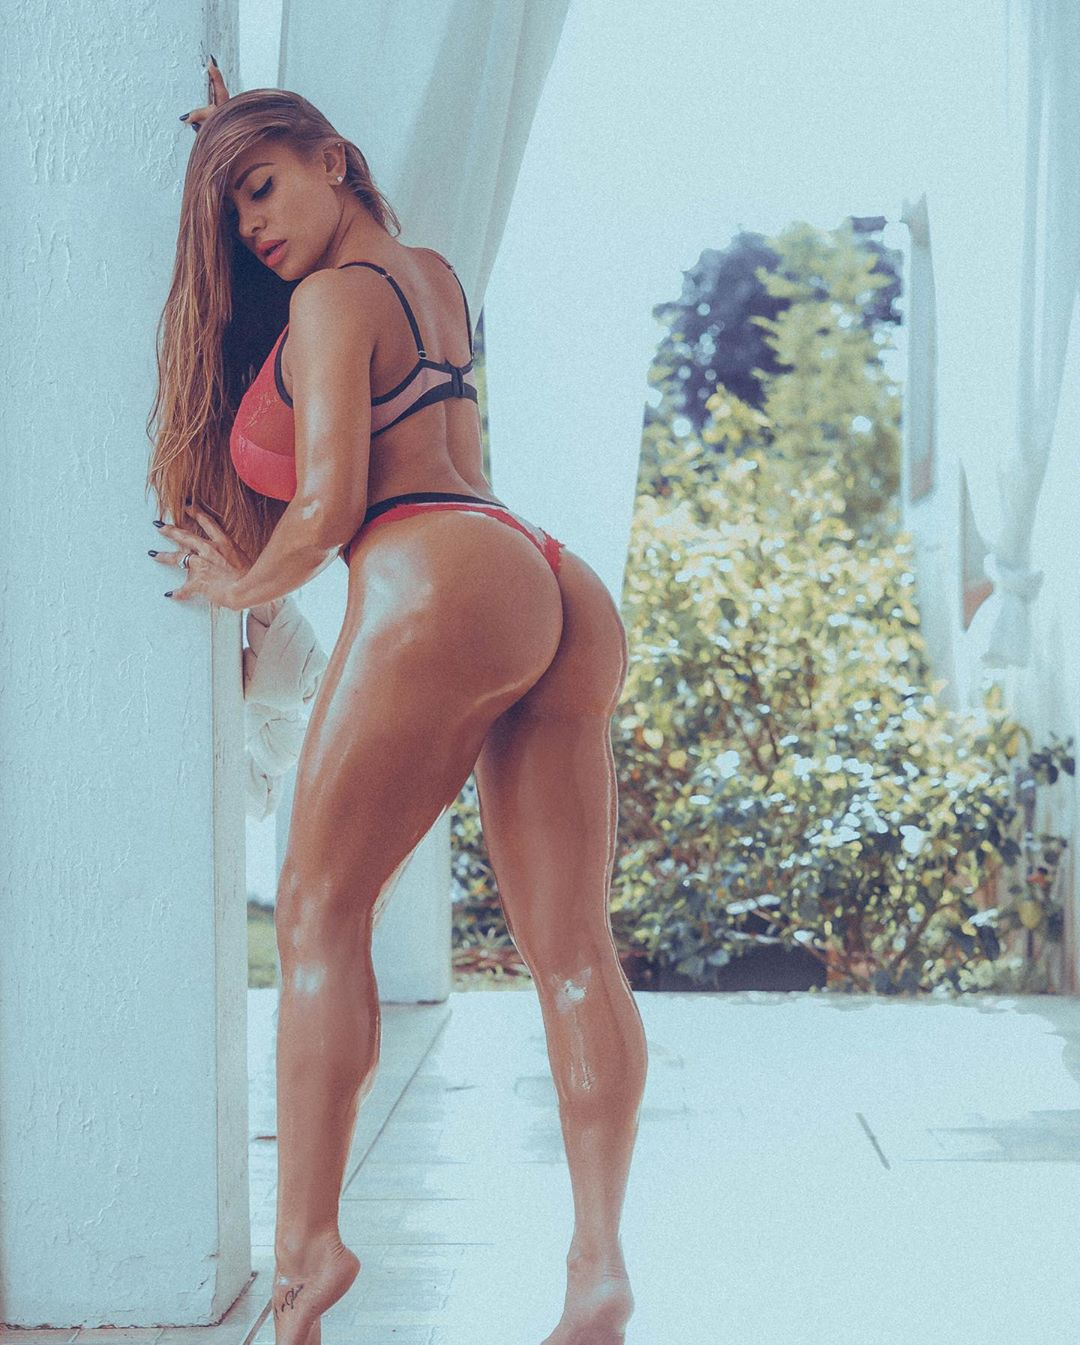 Francia James, Francety, Onlyfans 0021